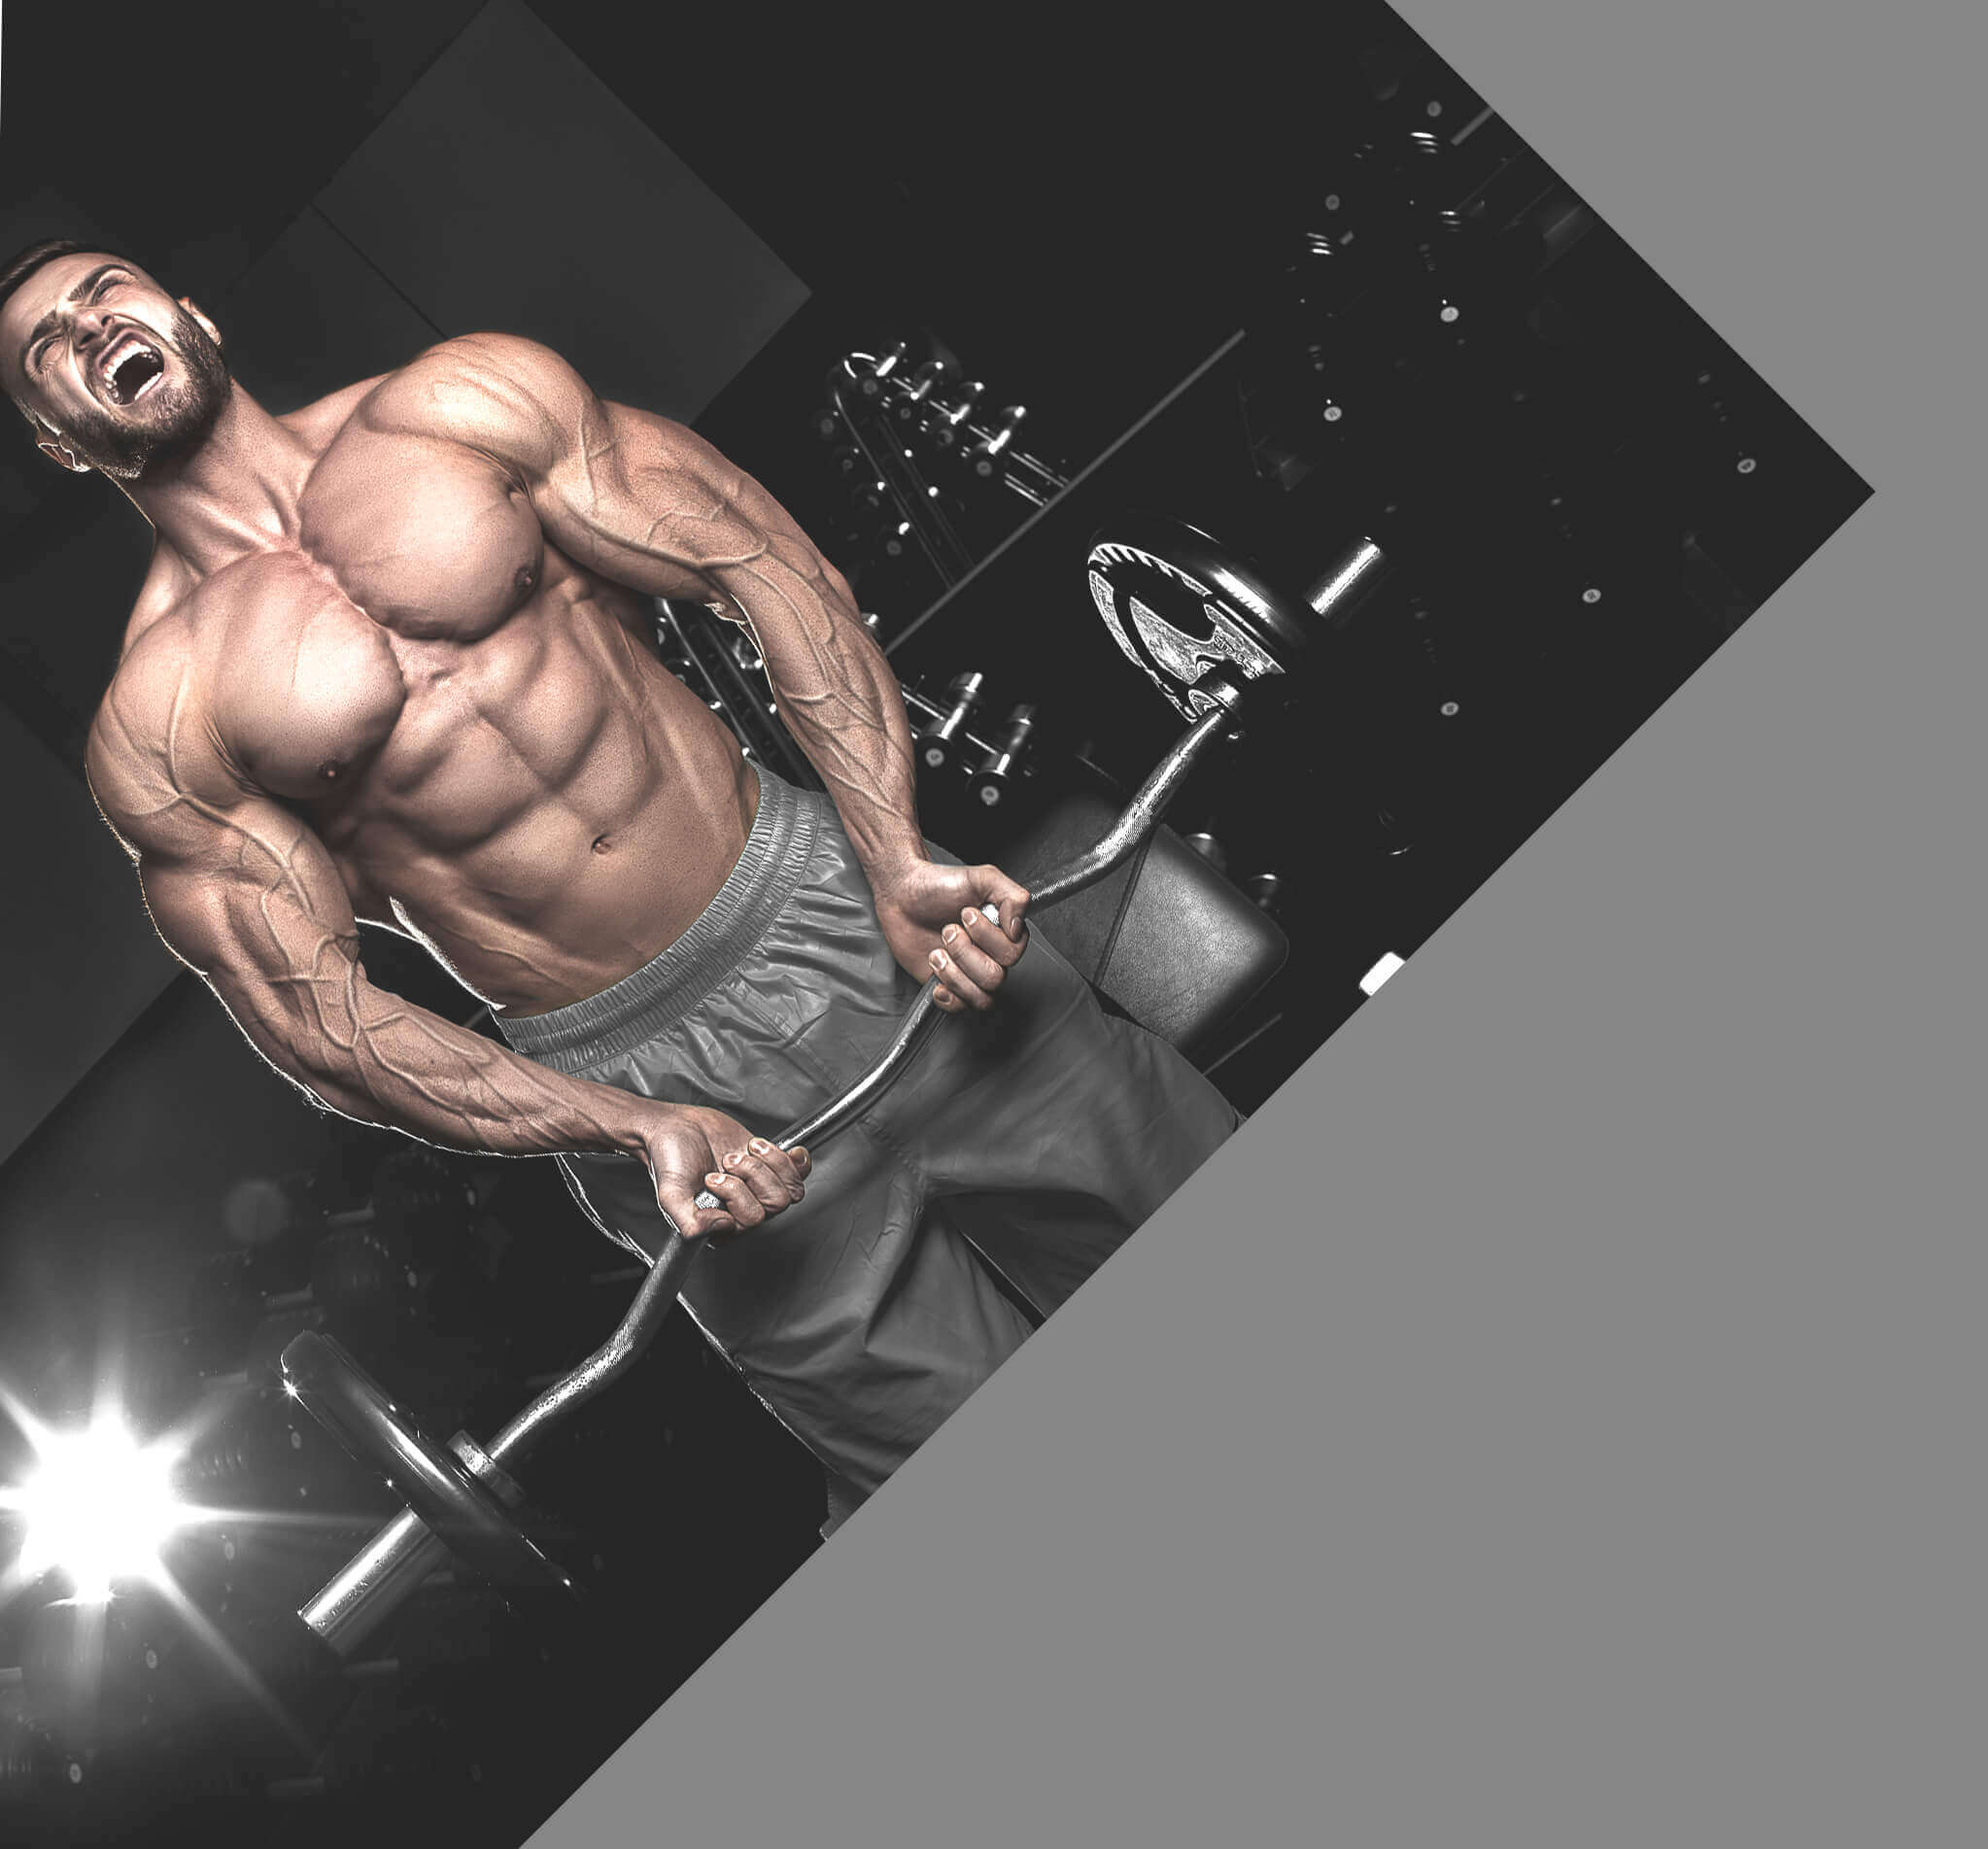 body-builder-lifting-barbell